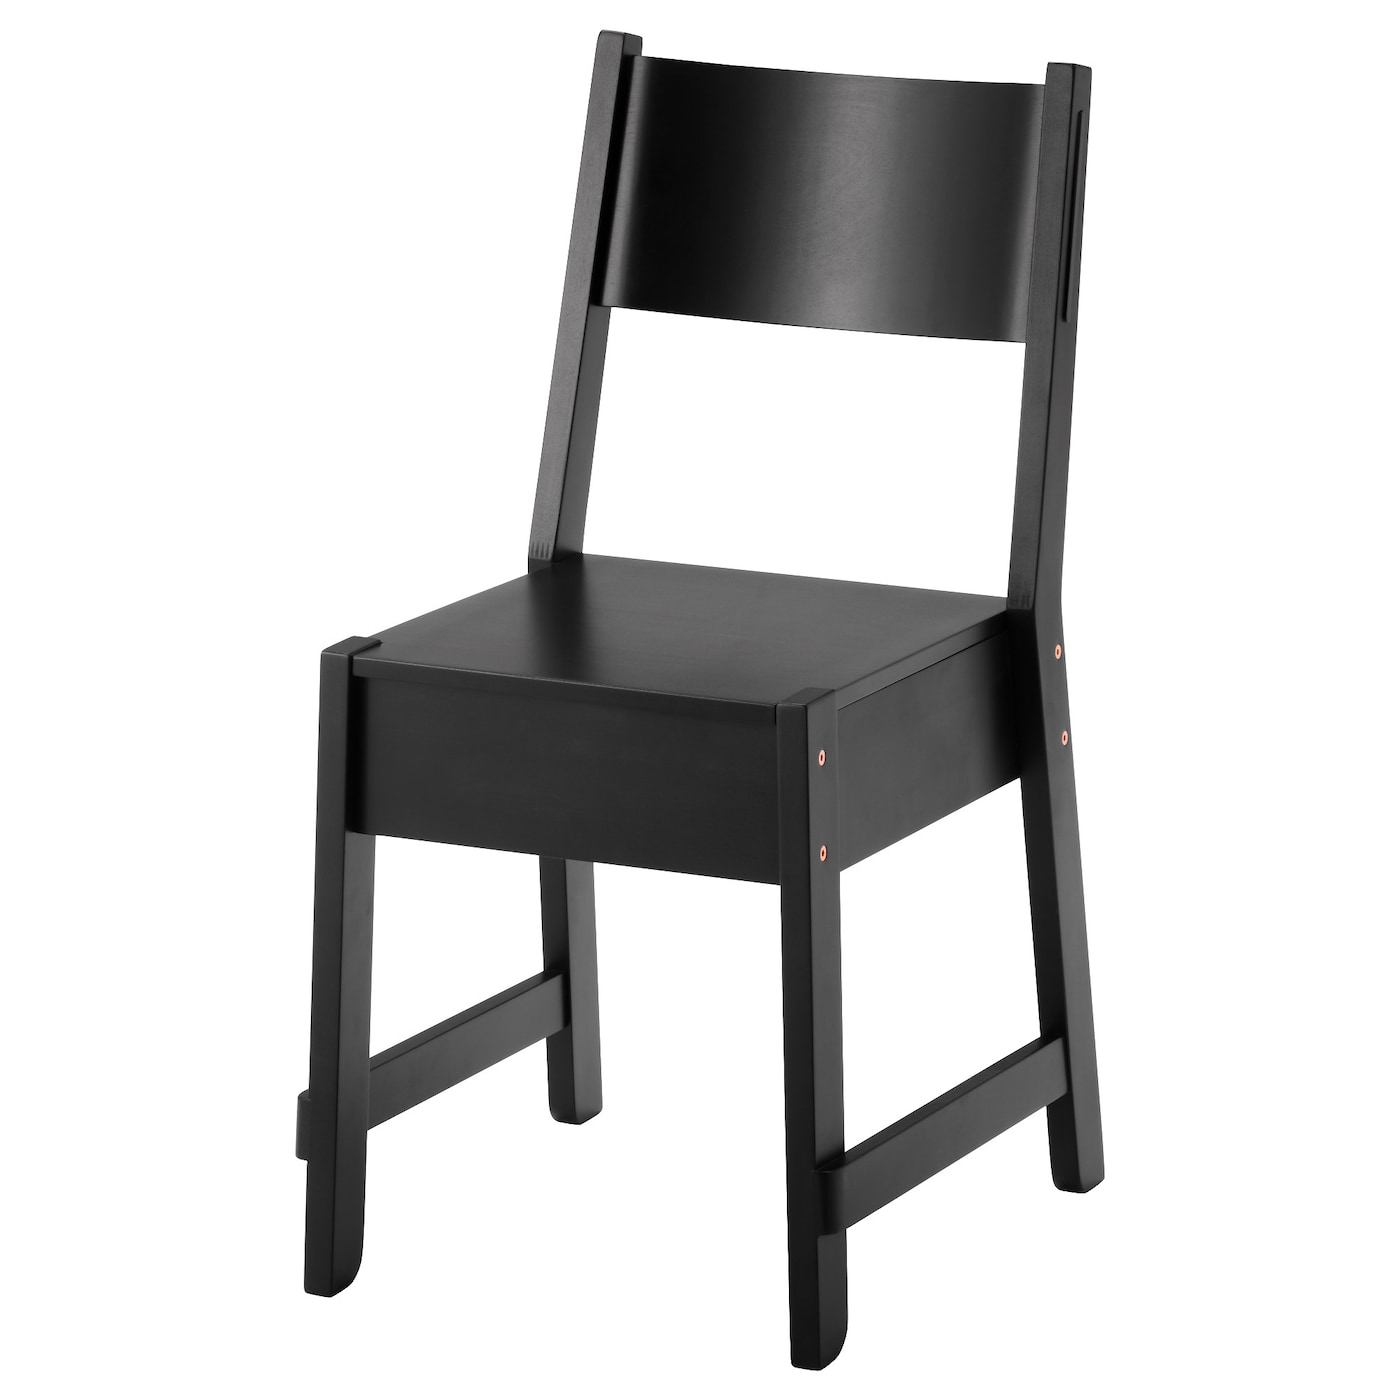 Norr 197 Ker Chair Black Ikea